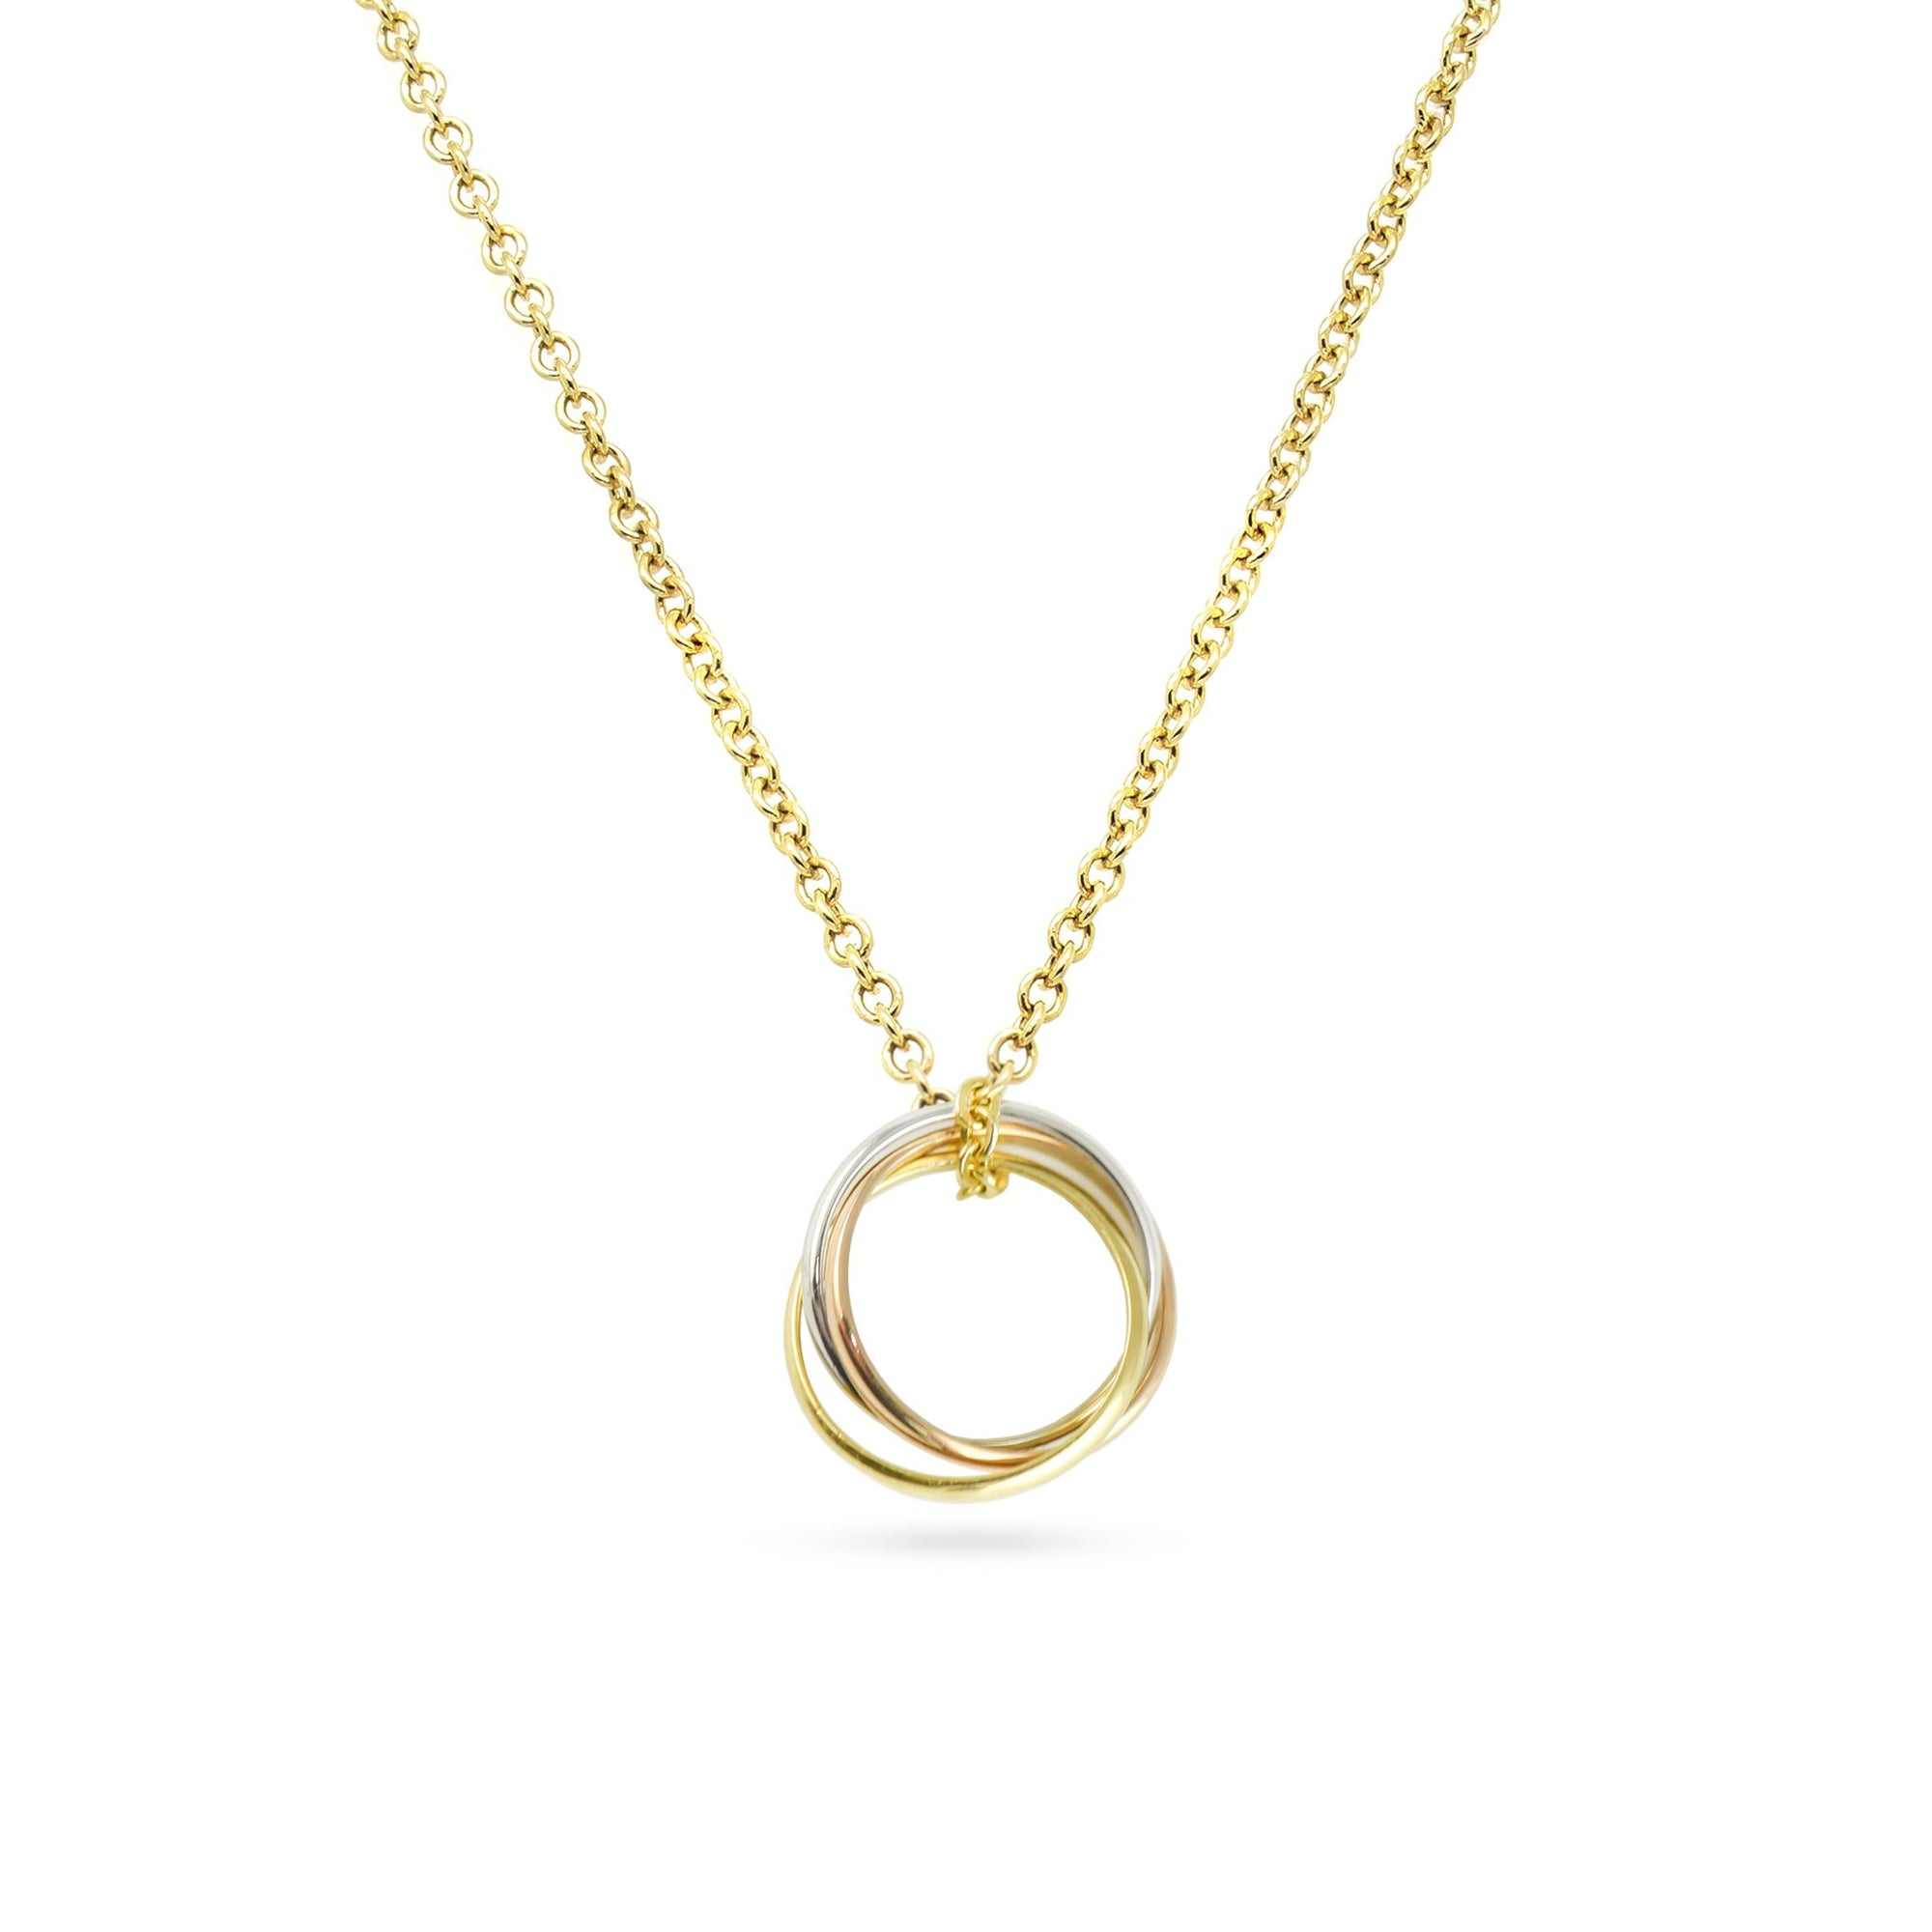 18ct Cartier Trinity Necklace